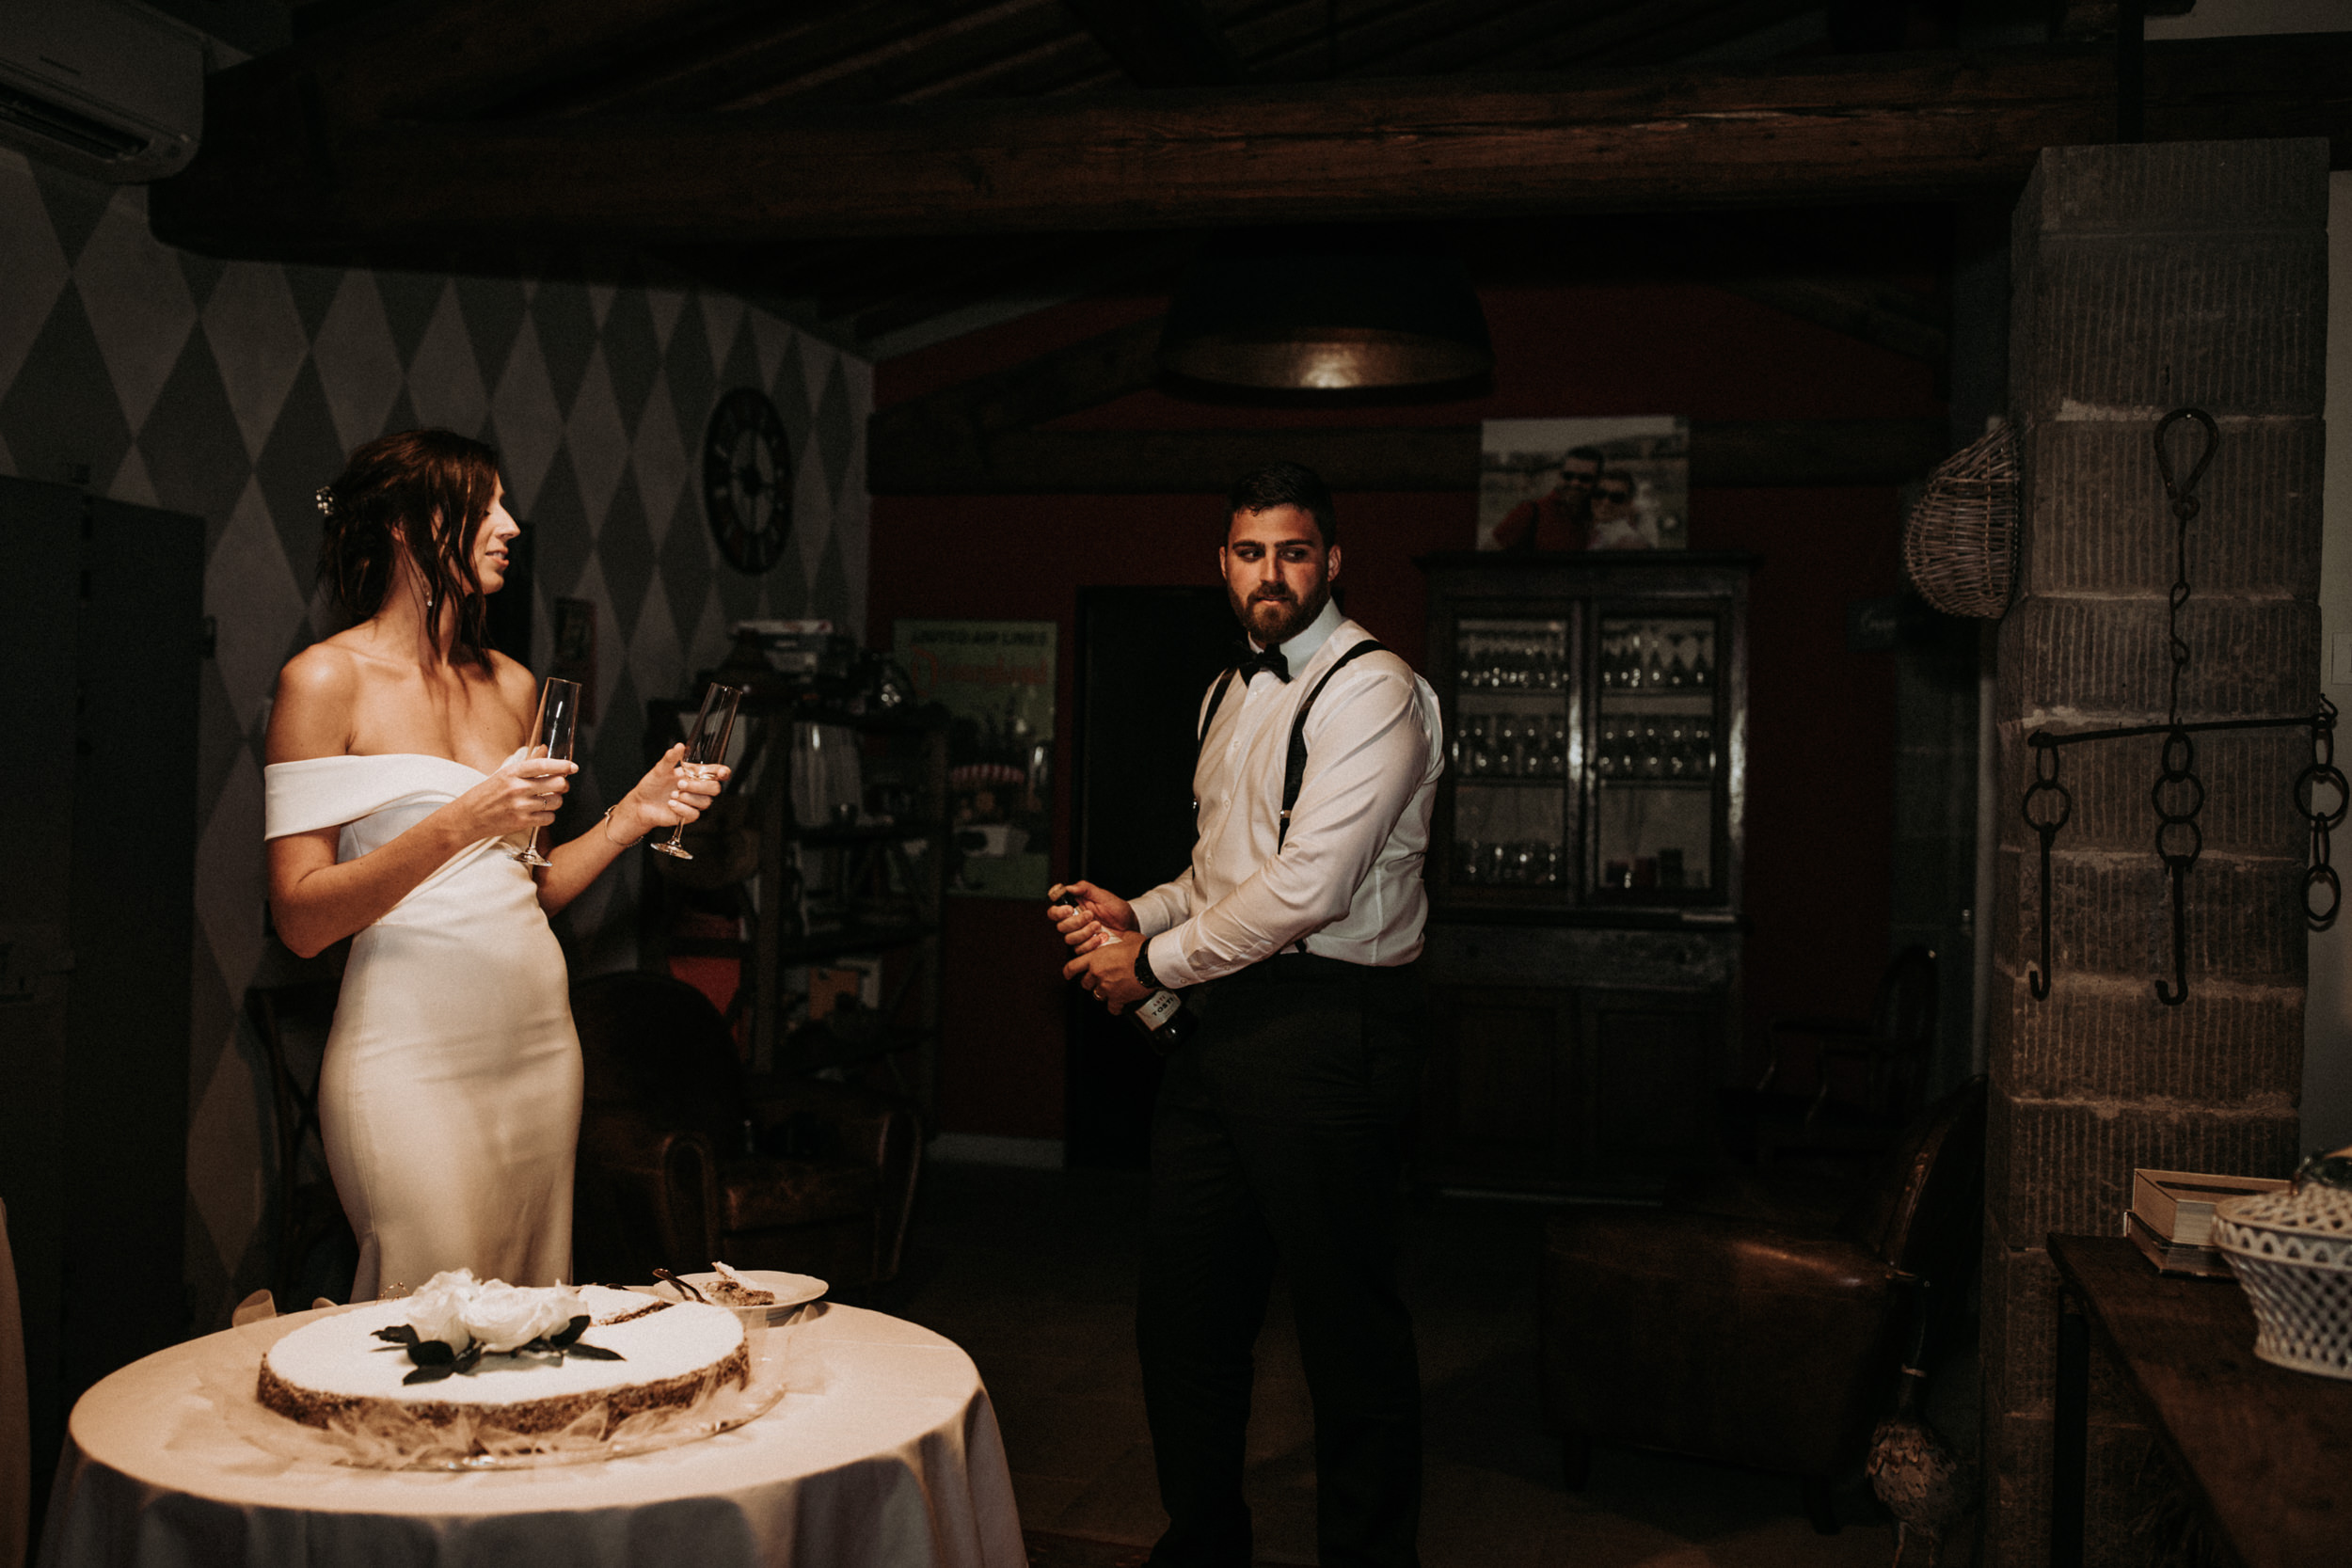 dm_photography_KW_Tuscanyweddingday_427